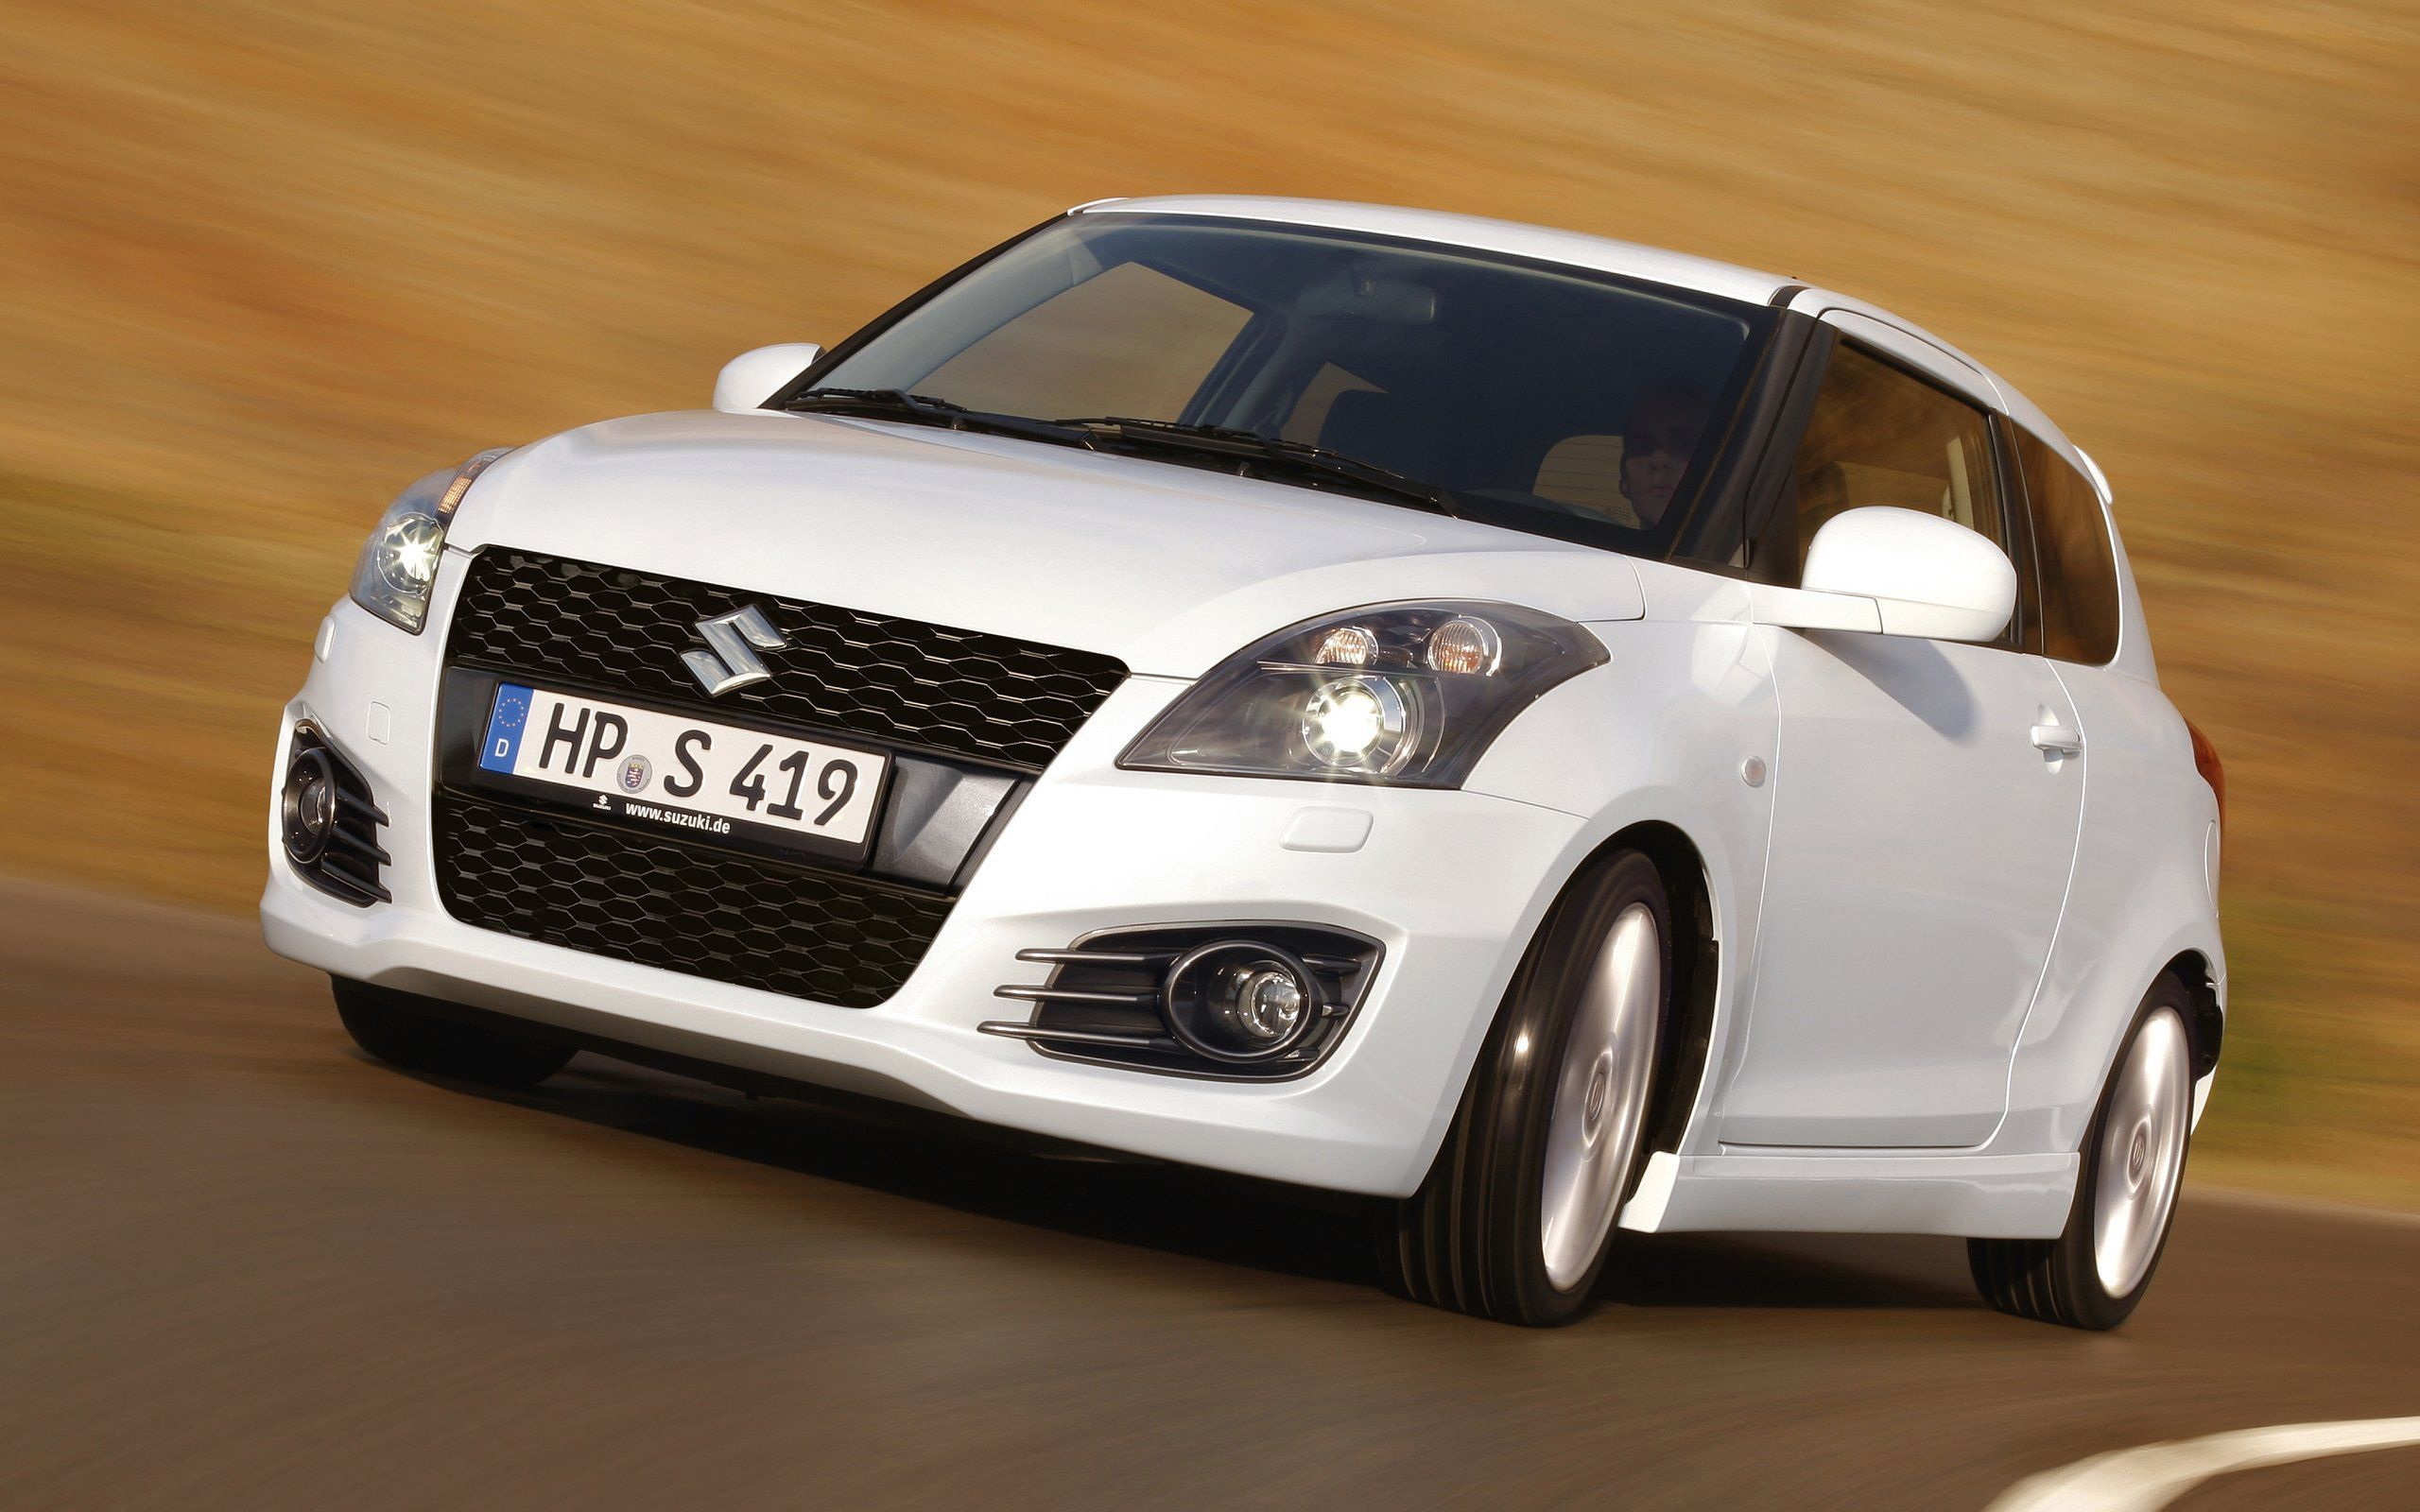 Suzuki swift sport 2013 pictures to pin on pinterest - Suzuki Swift Sport Hd Wallpaper Http 1sthdwallpapers Com Suzuki